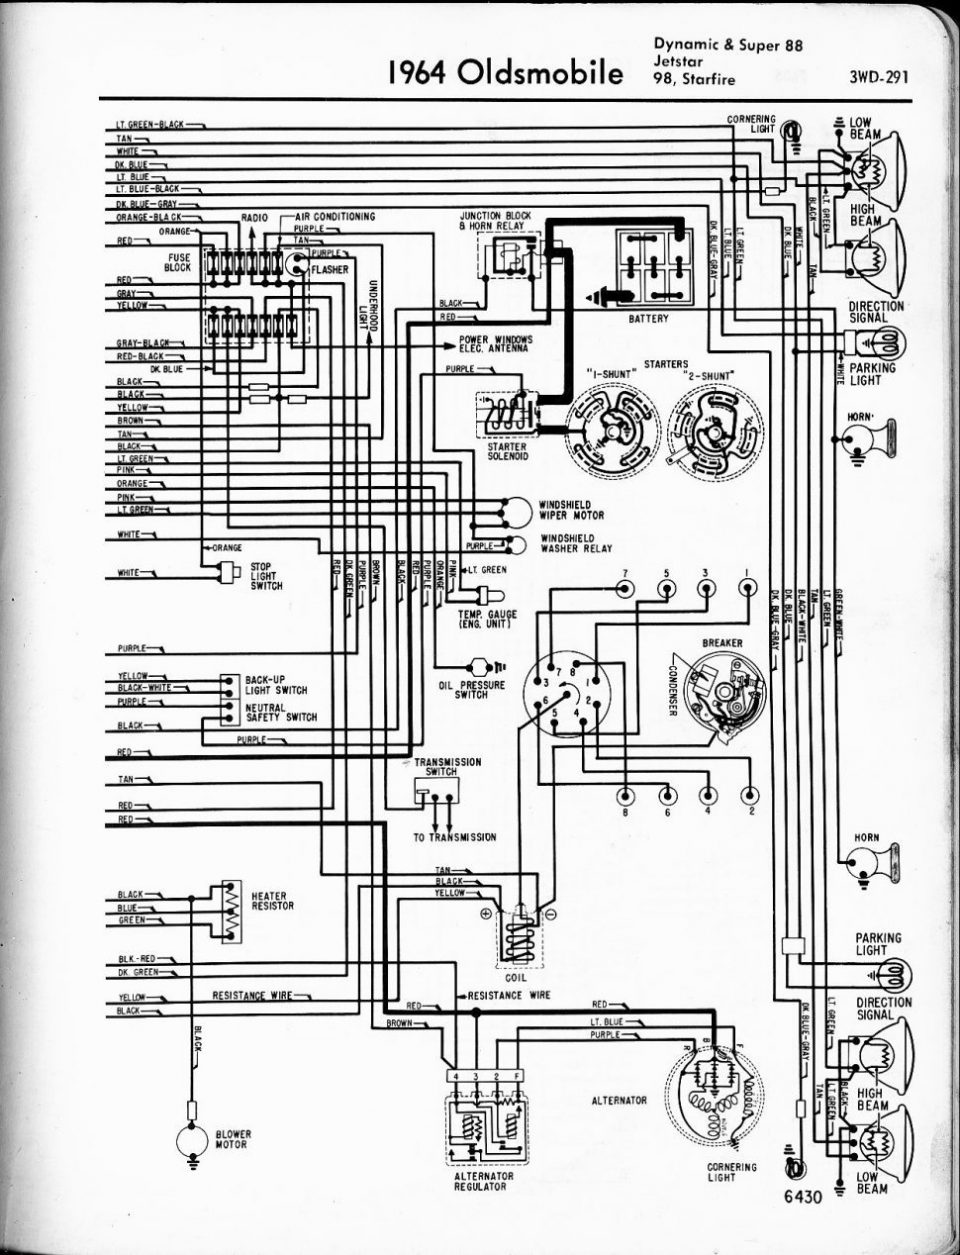 Solar Panel Drawing At Free For Personal Use In Parallel Wiring Panels Download Diagrams 960x1255 Diy System Diagram Pdf Electrical Sample